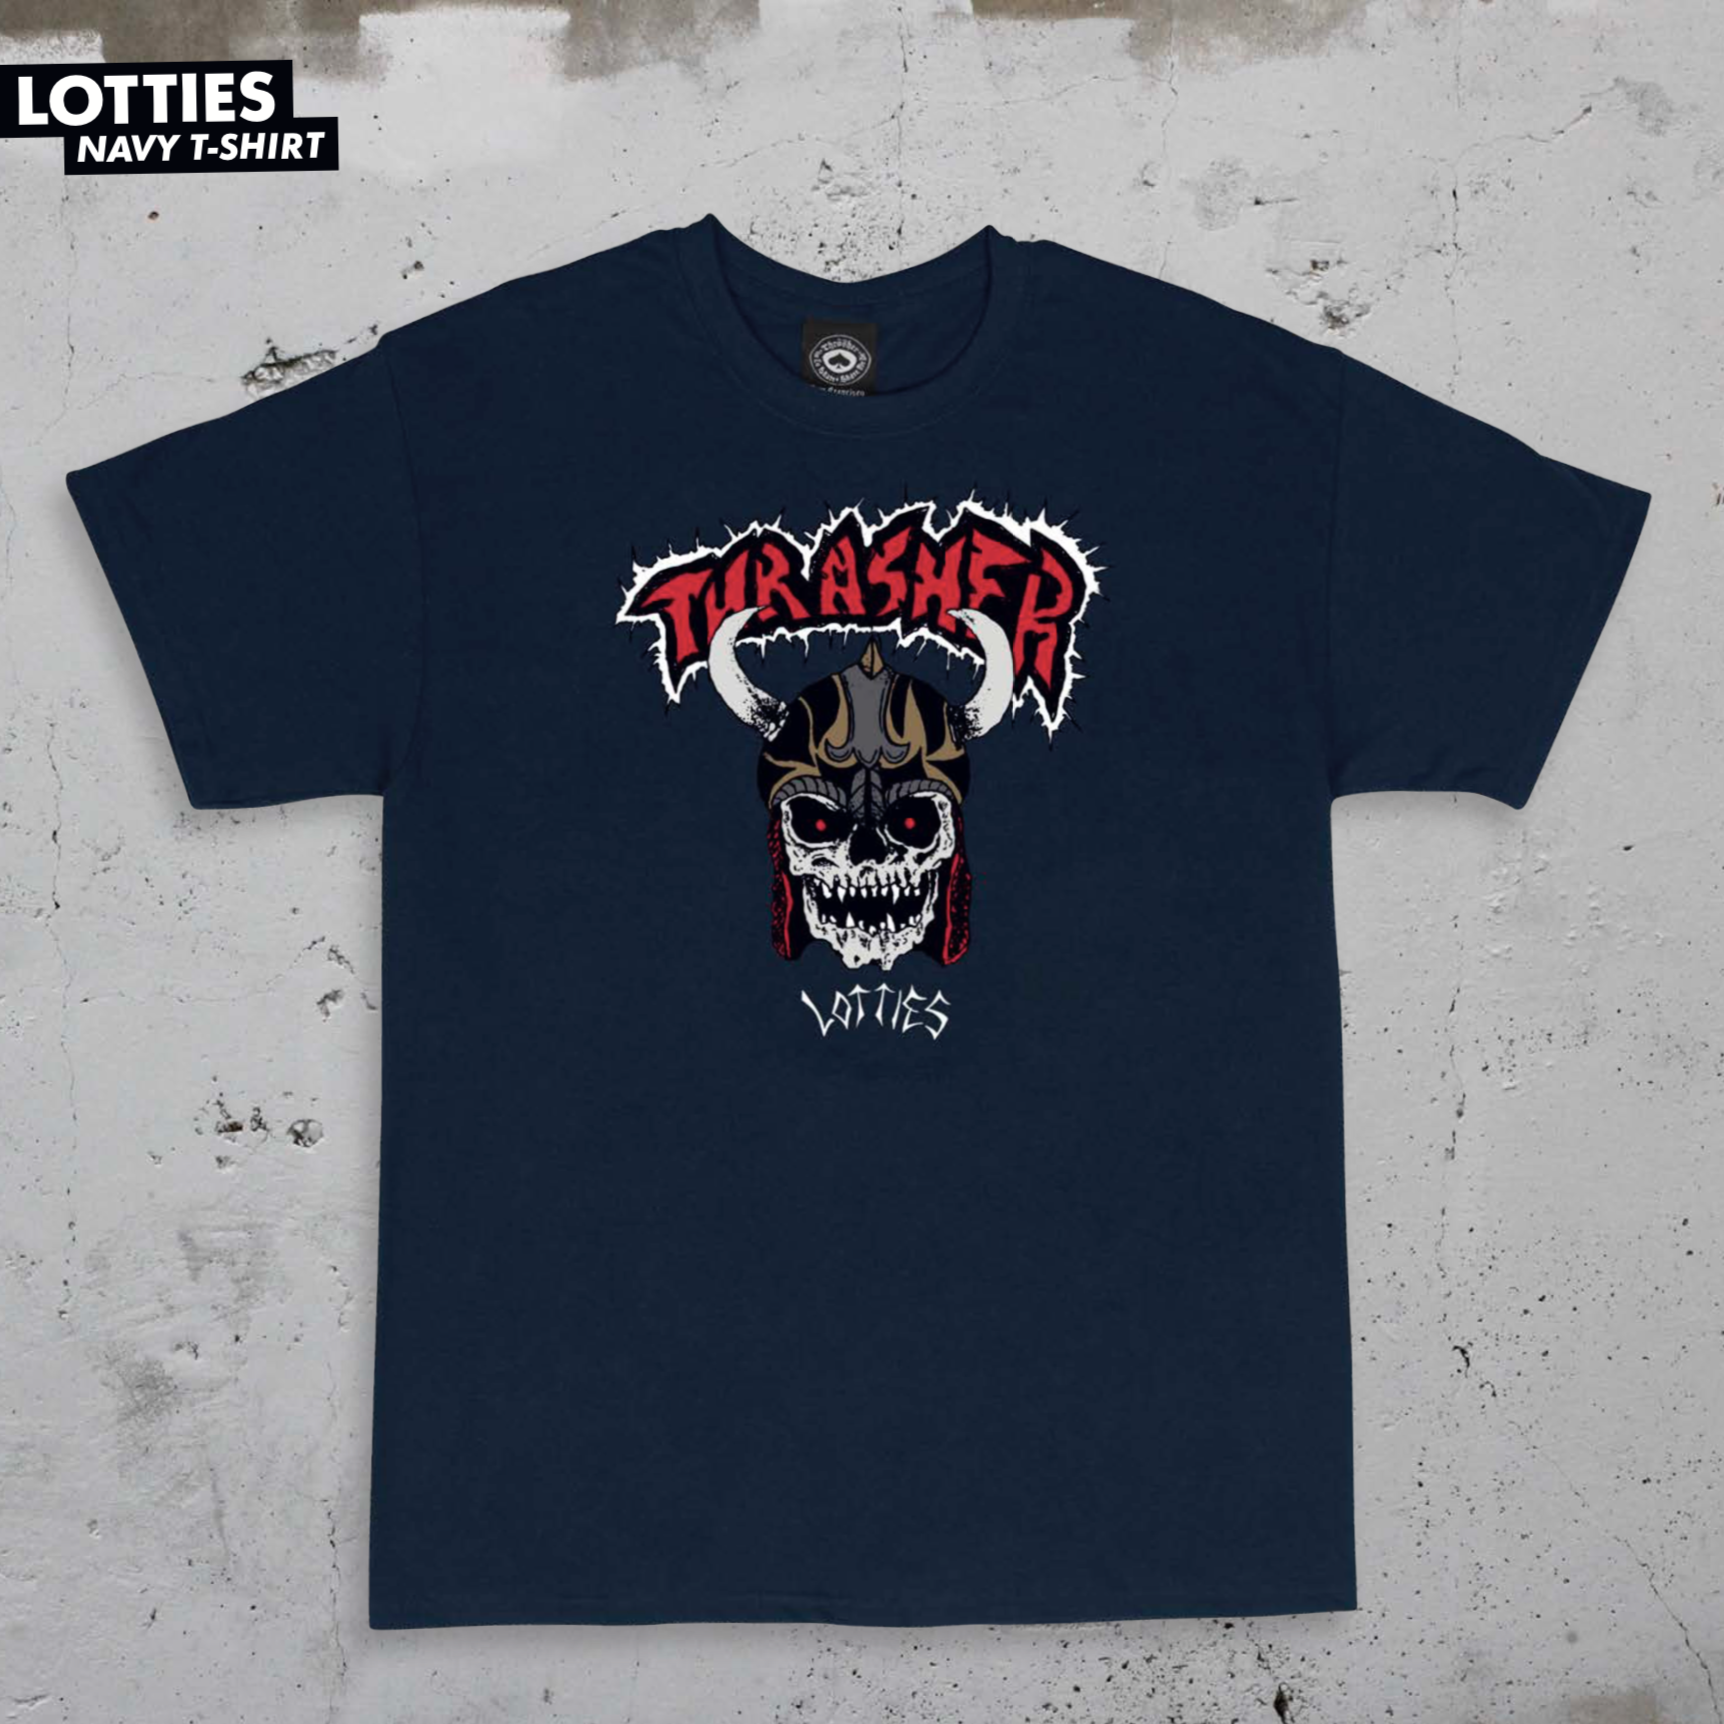 Thrasher Mag. Lotties Navy